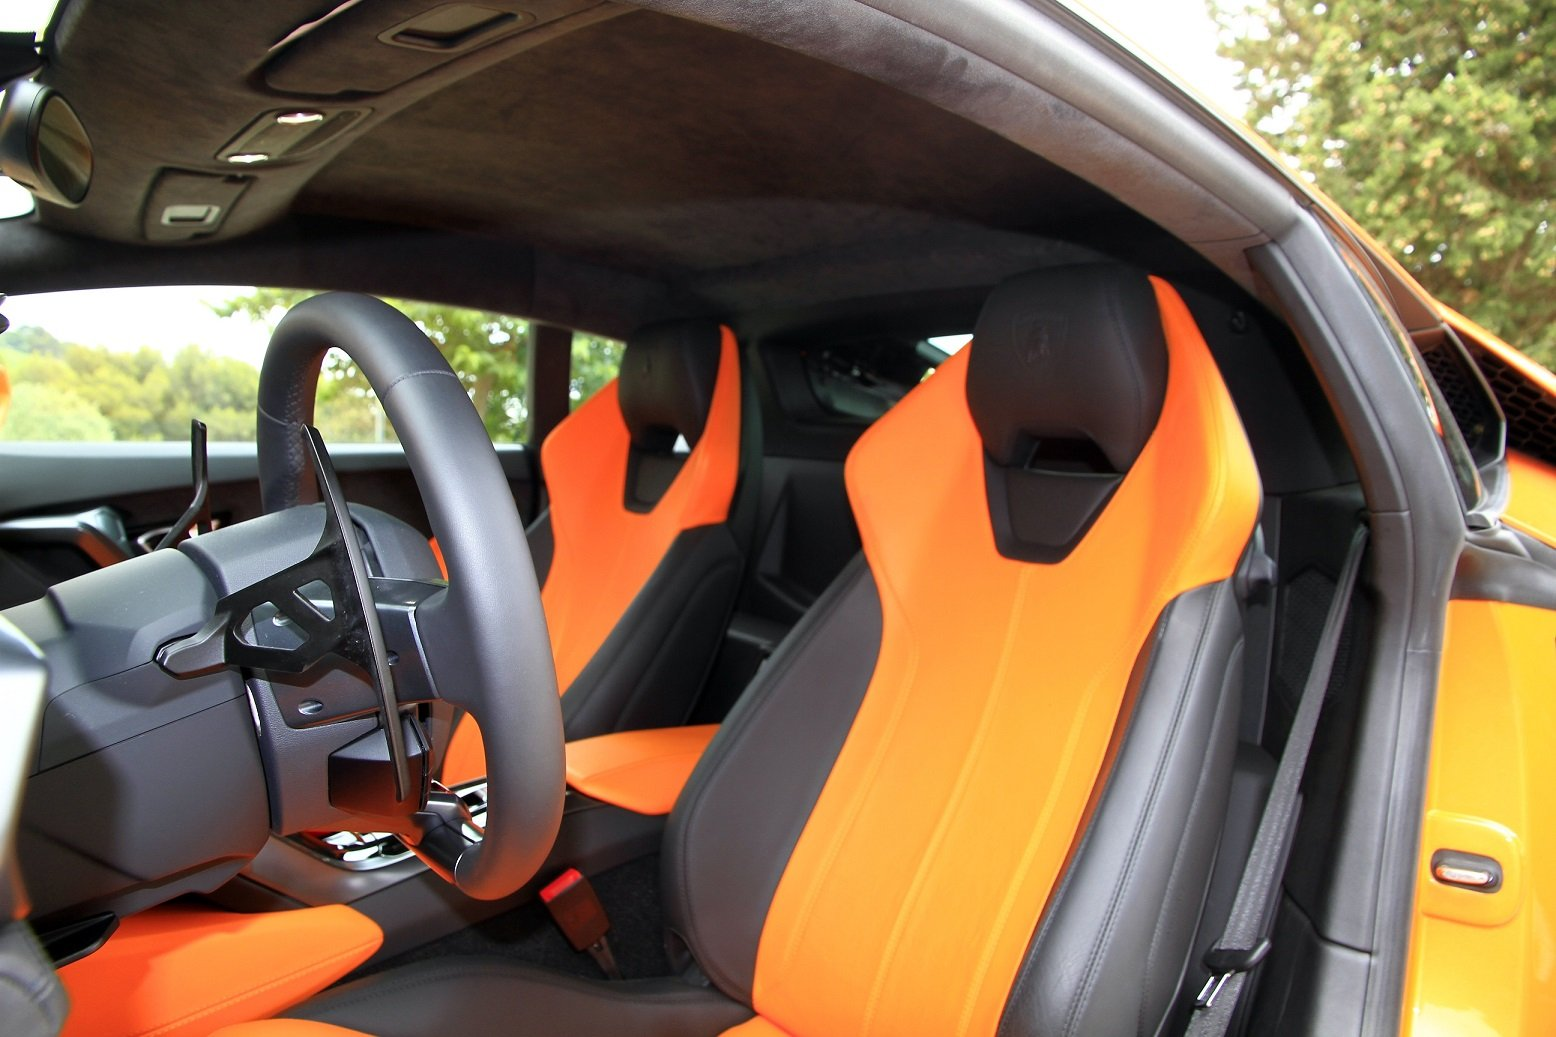 2014 610 4 huracan lamborghini lb724 orange supercar wallpaper 1556x1037 390000 wallpaperup